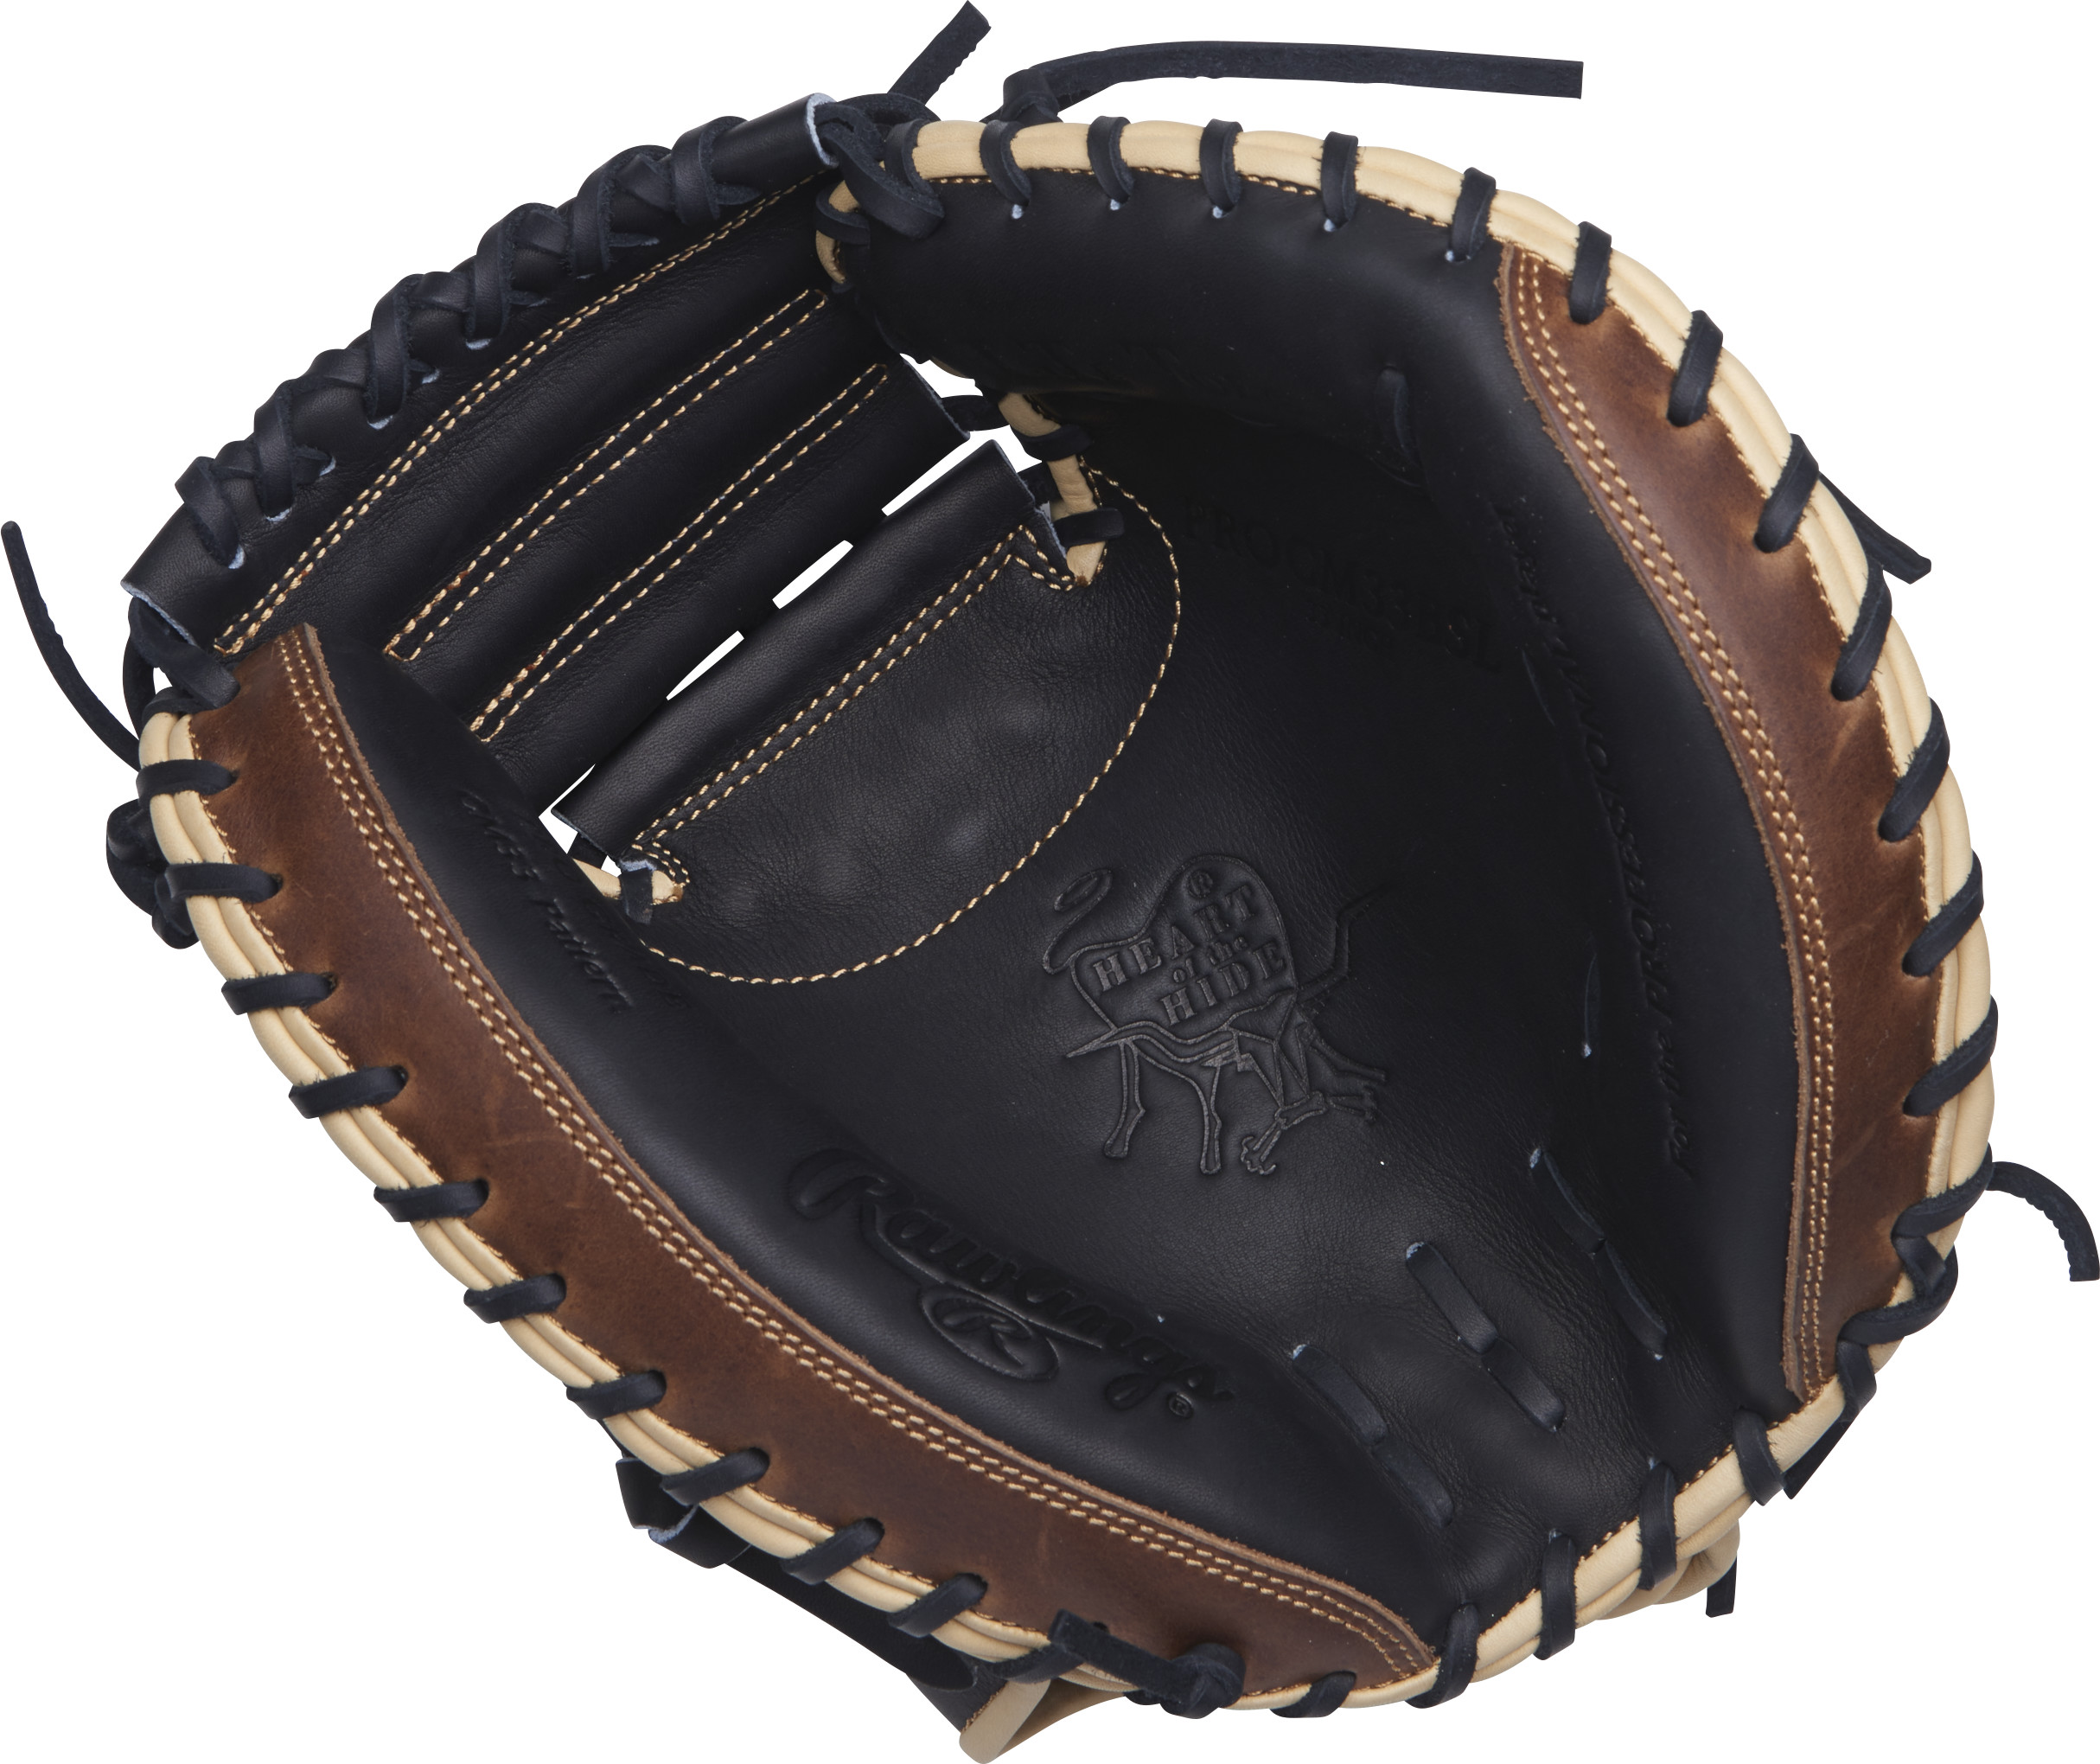 http://www.bestbatdeals.com/images/gloves/rawlings/PROCM33BSL-1.jpg